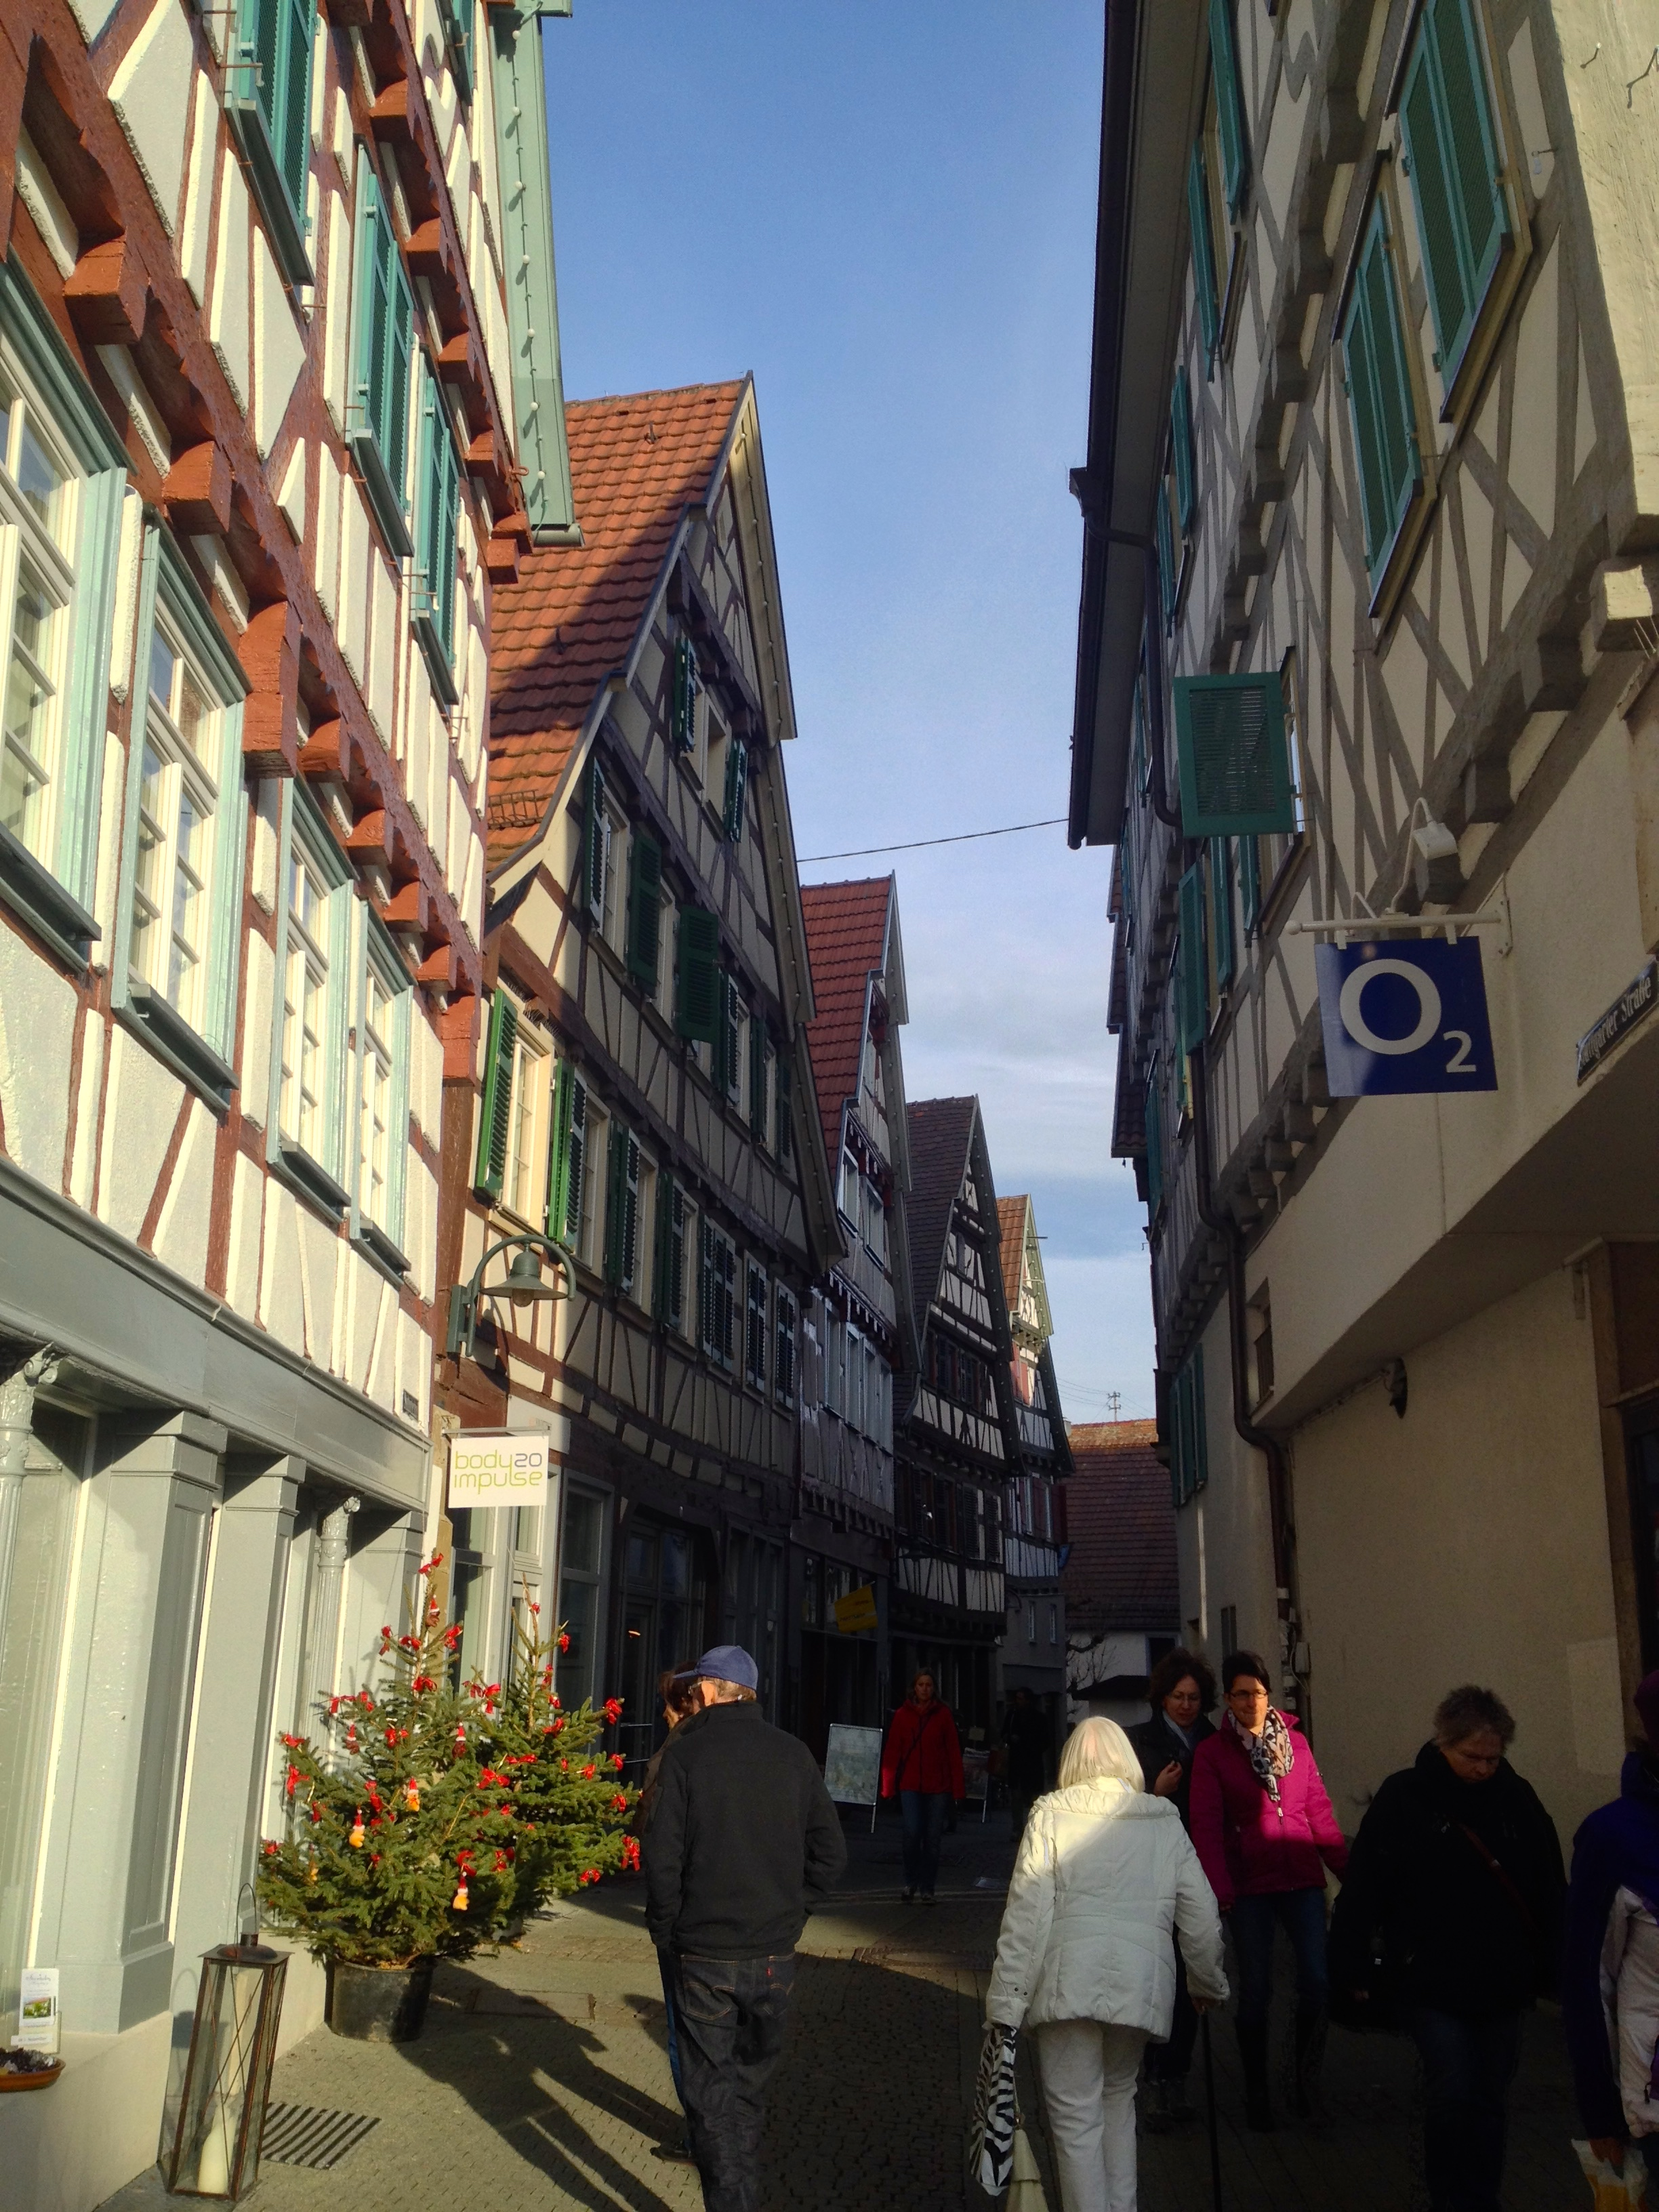 Along the streets of Herrenberg